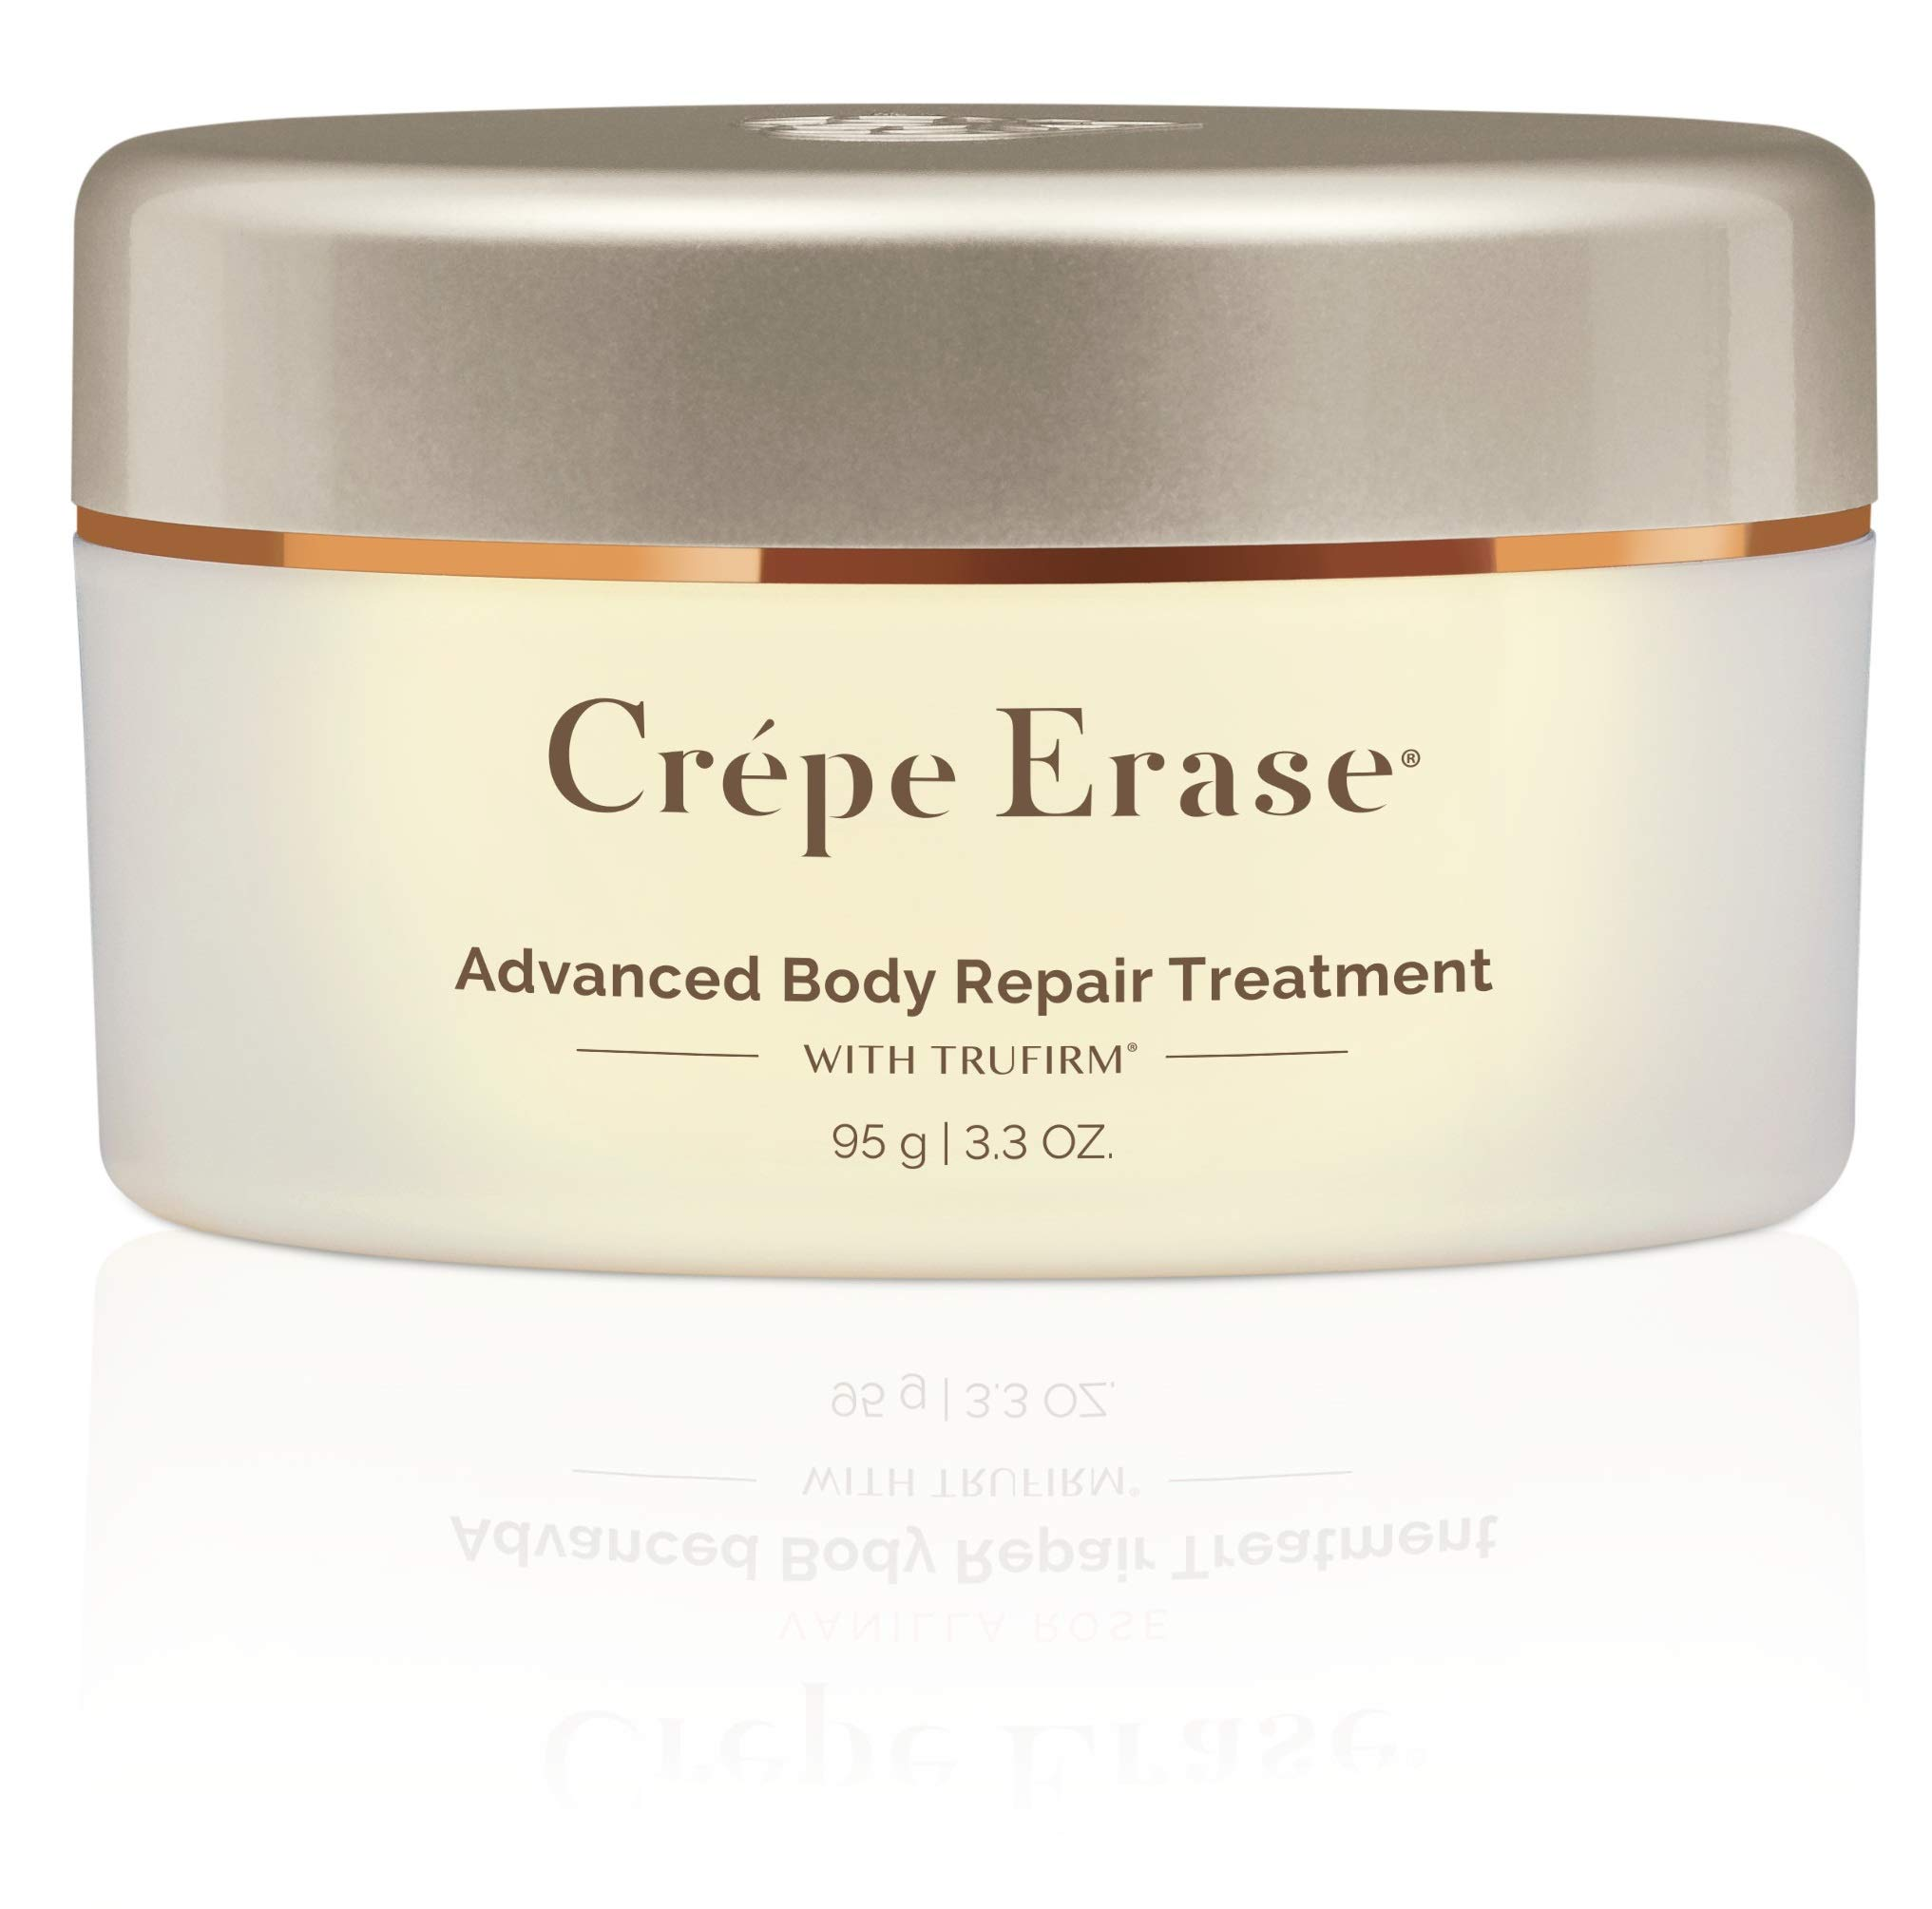 Crépe Erase Advanced - Advanced Body Repair Treatment with Trufirm Complex & 9 Super Hydrators - Original Citrus Scent - Introductory Size/3.3 Ounces